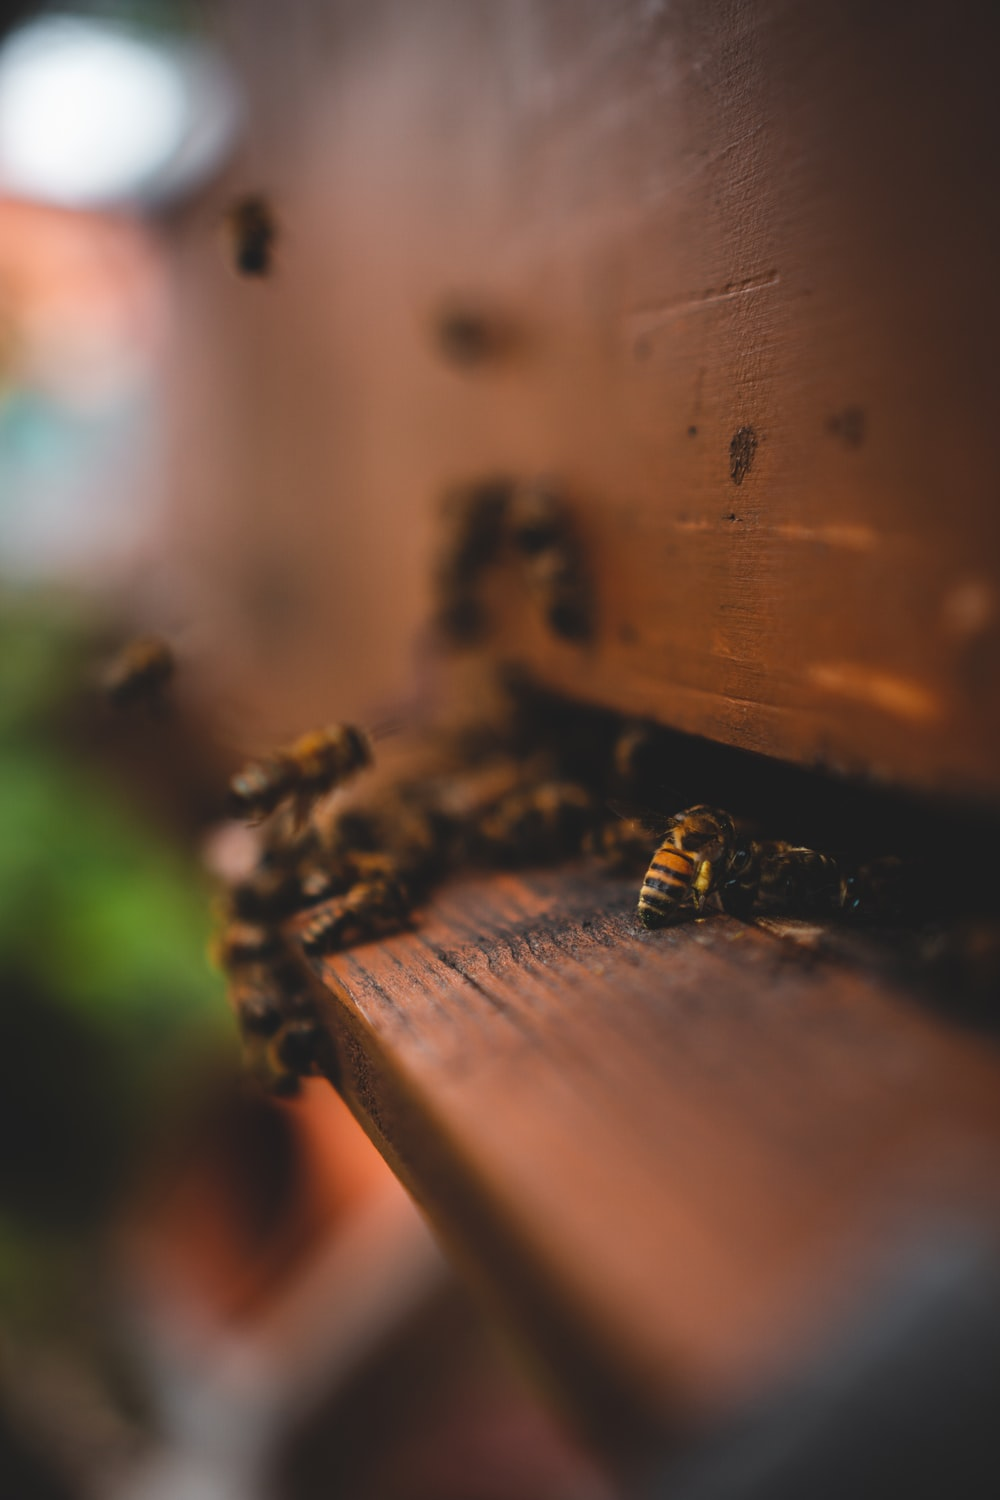 black and yellow bee on brown wooden plank